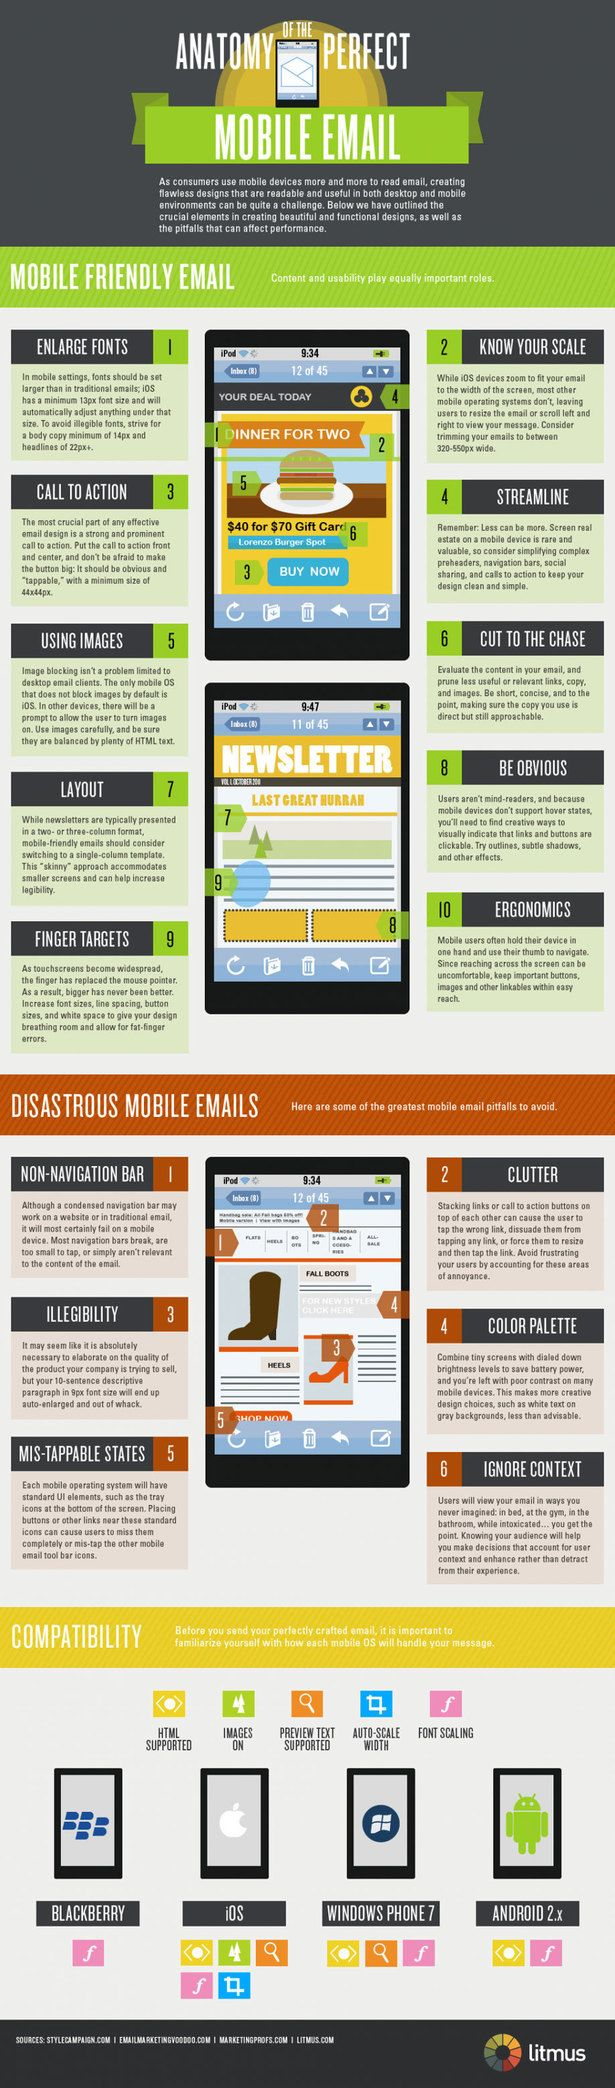 The anatomy of the perfect mobile email.